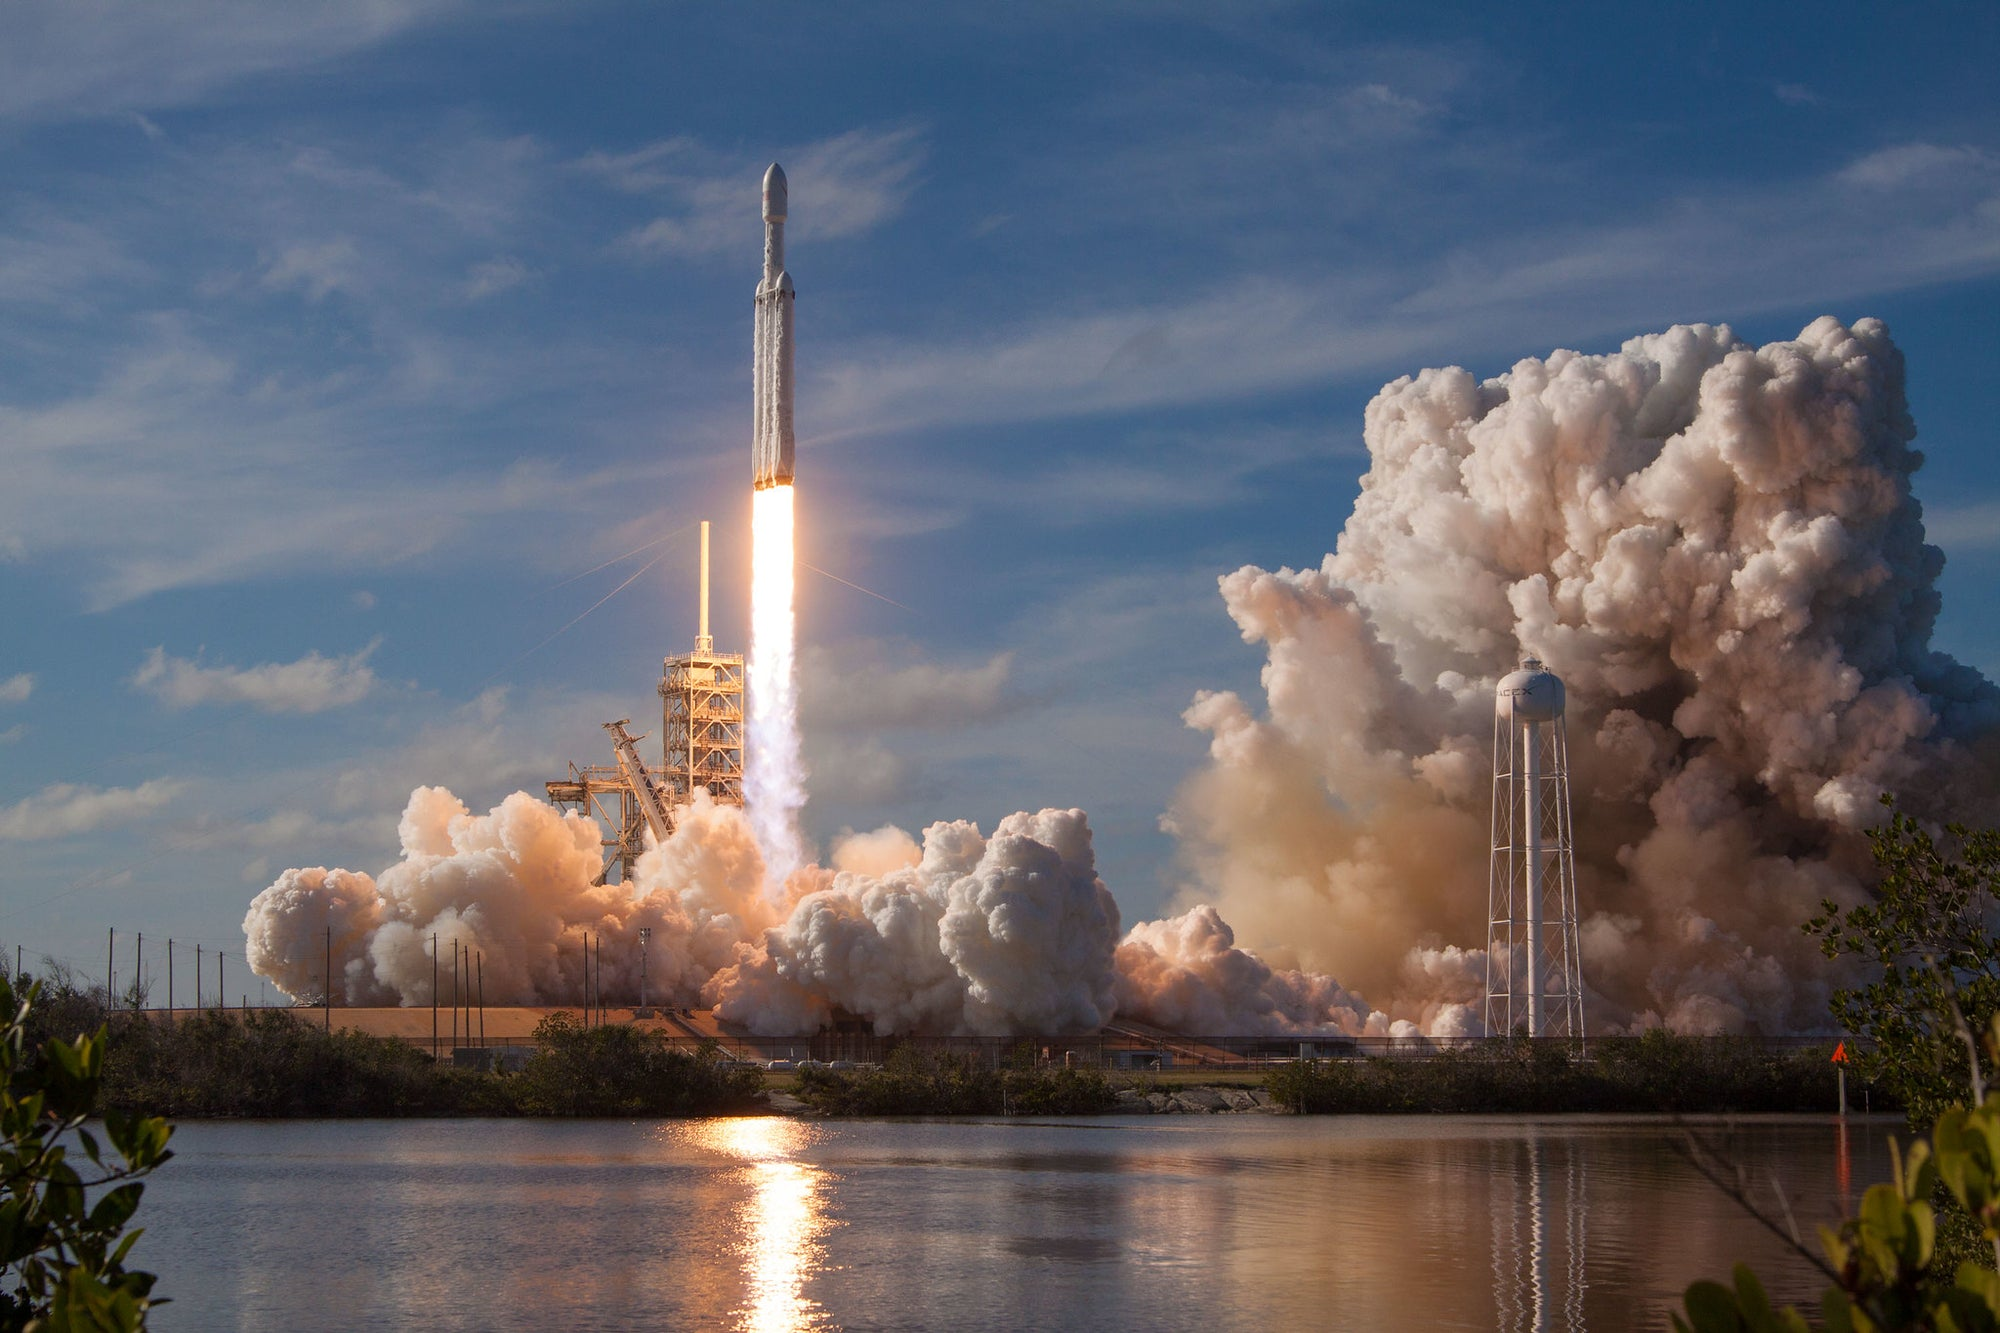 U.S. Space Force Modifies SpaceX Contract, Awards Over $16 Million More For A National Security Mission